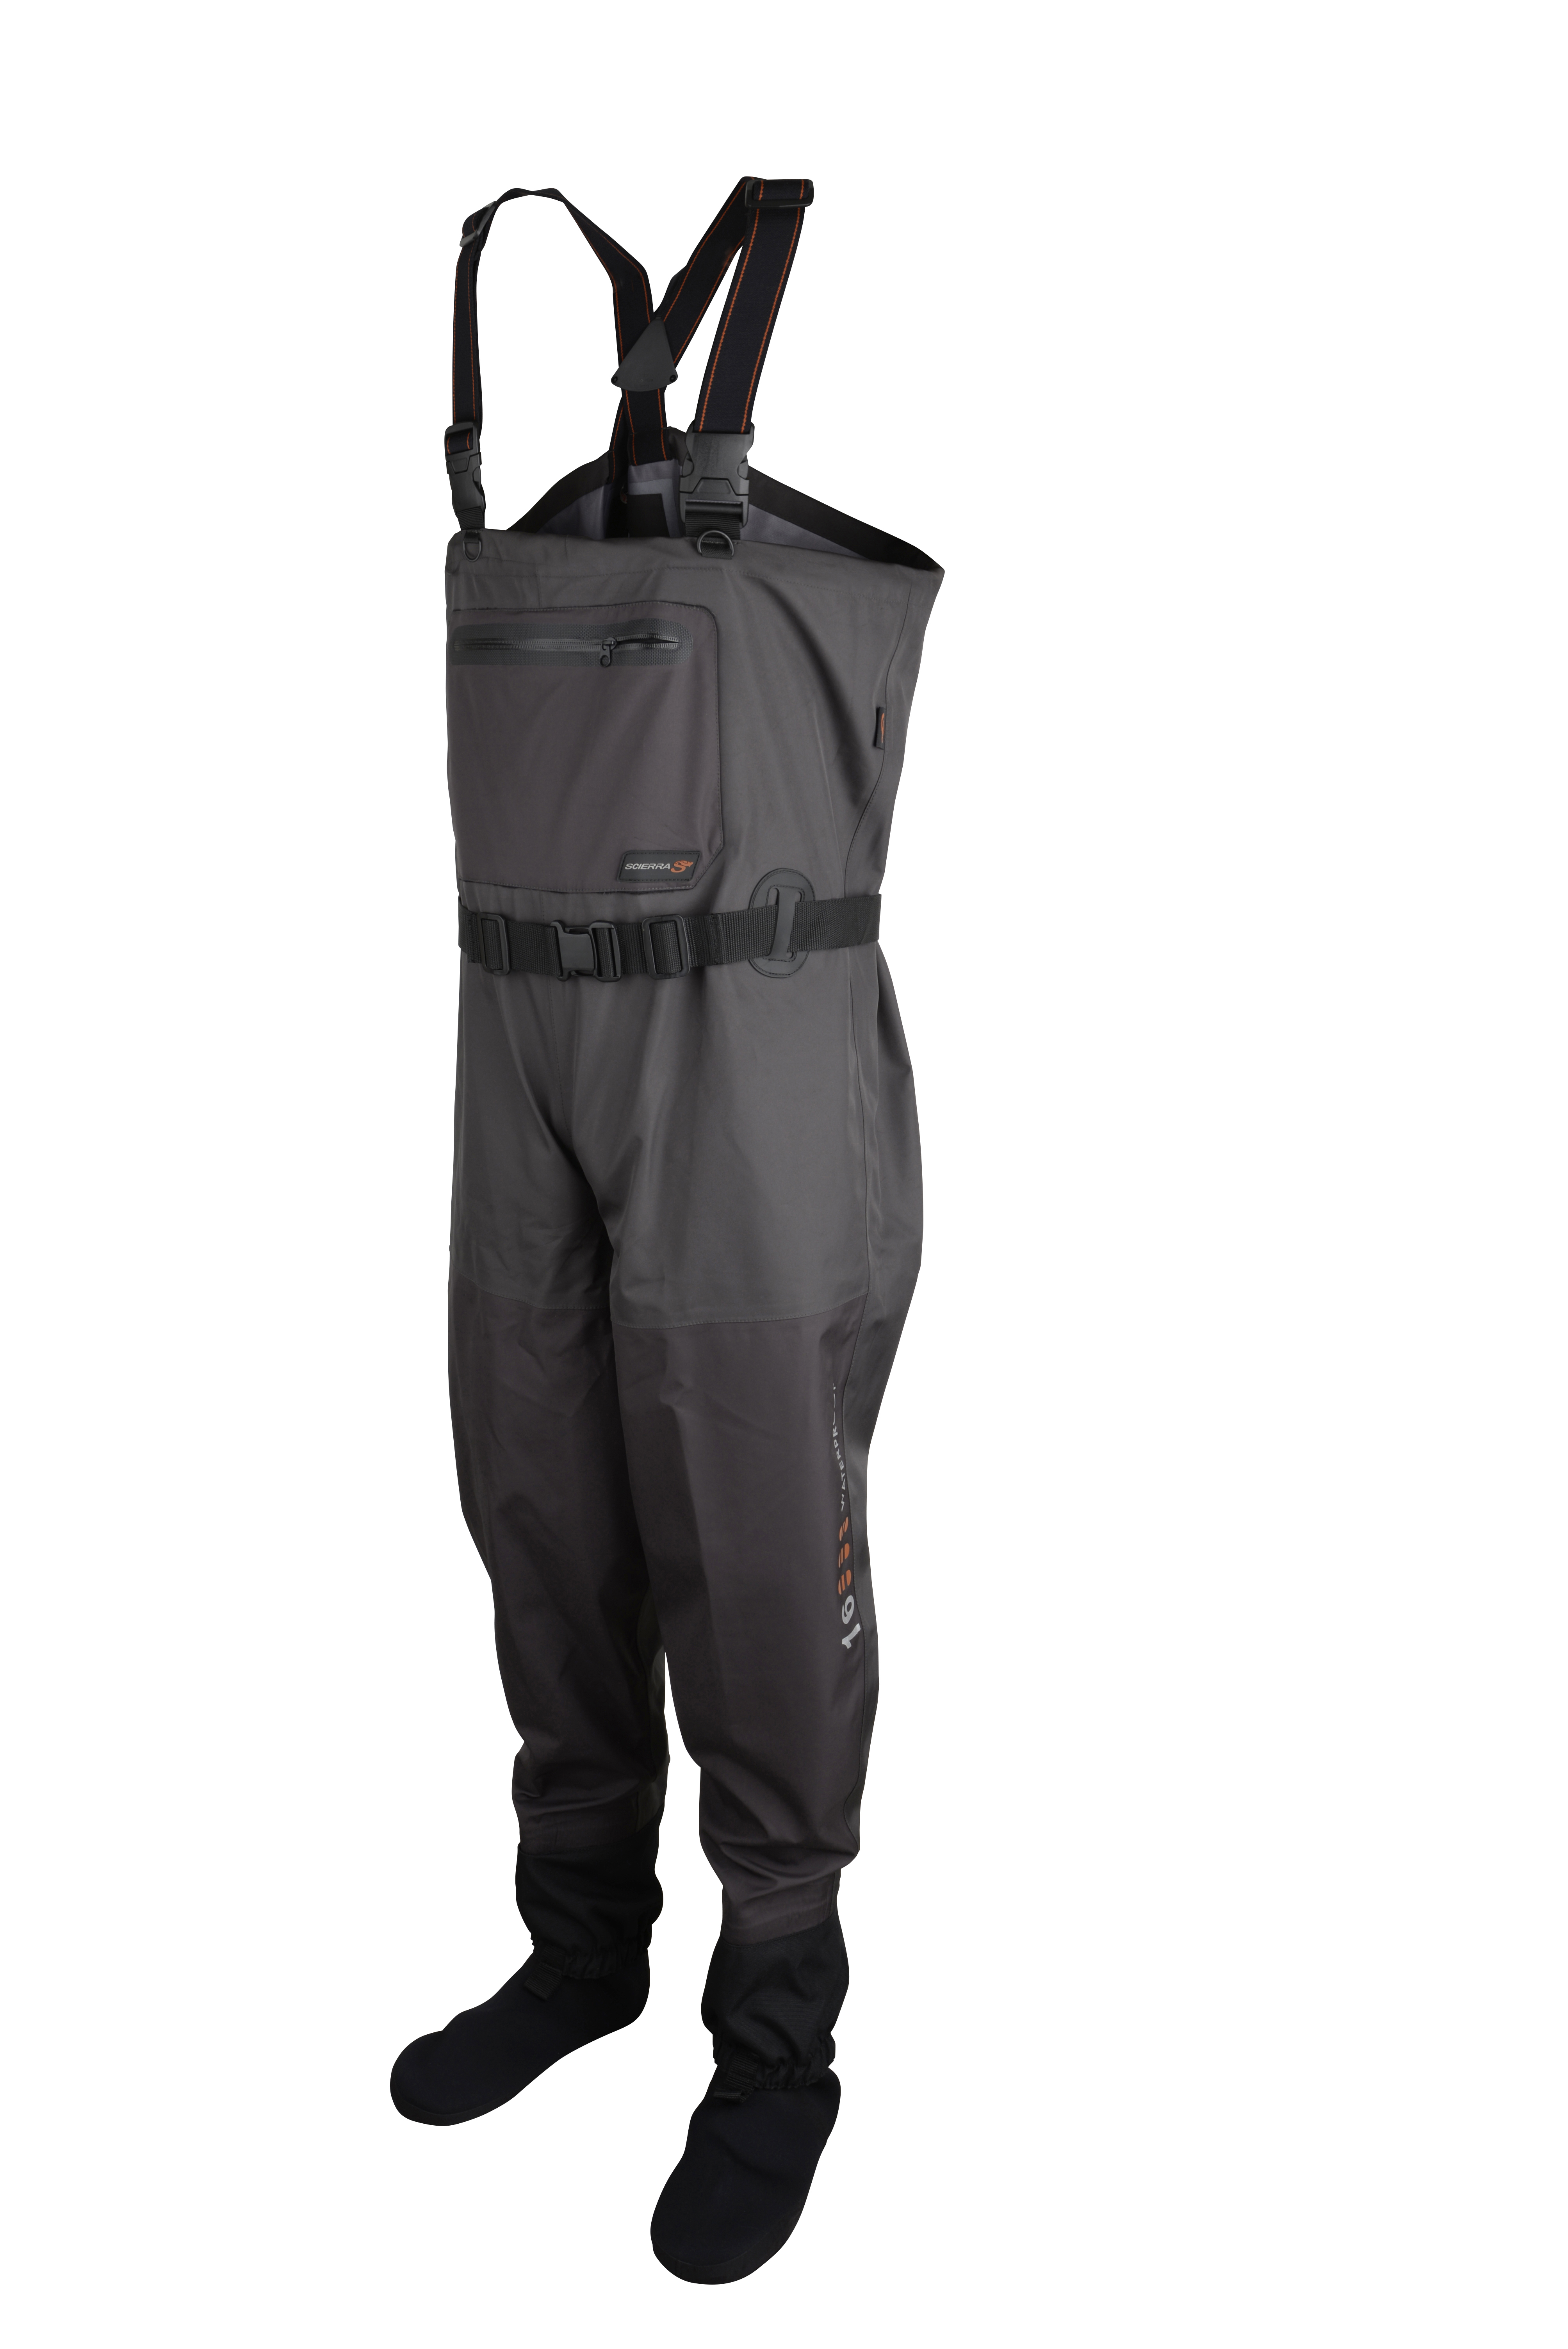 Scierra x 16000 stockingfoot chest waders glasgow for Chest waders for fishing